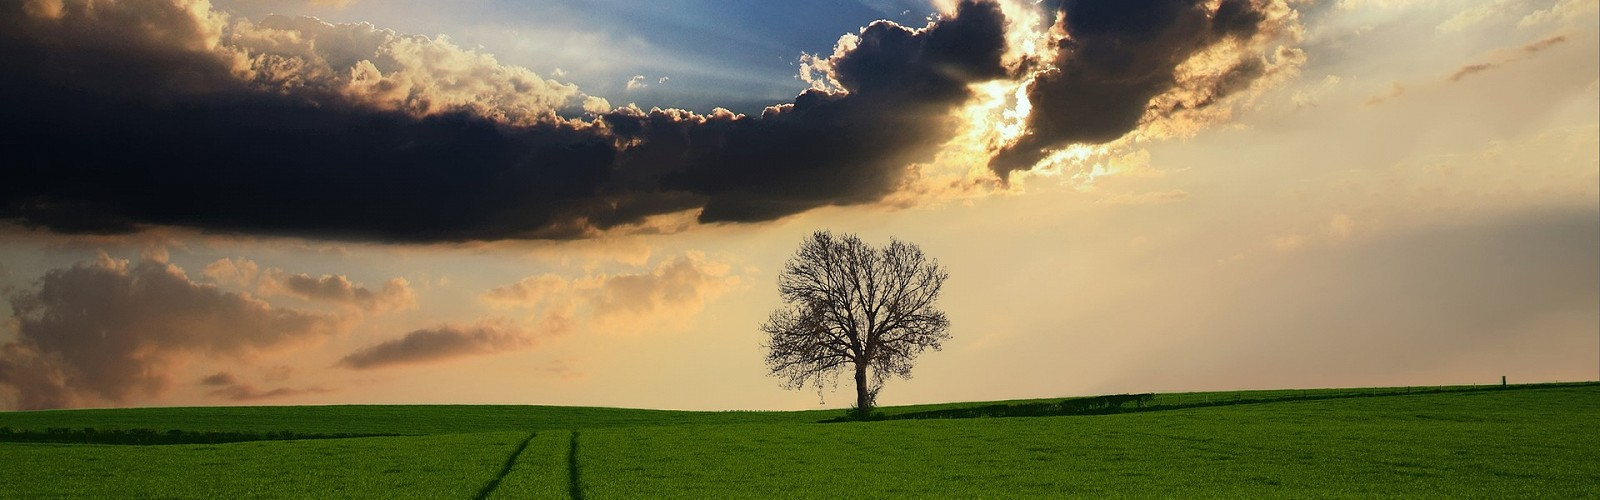 tree on horizon of green field (image: Digital Artist / pixabay)